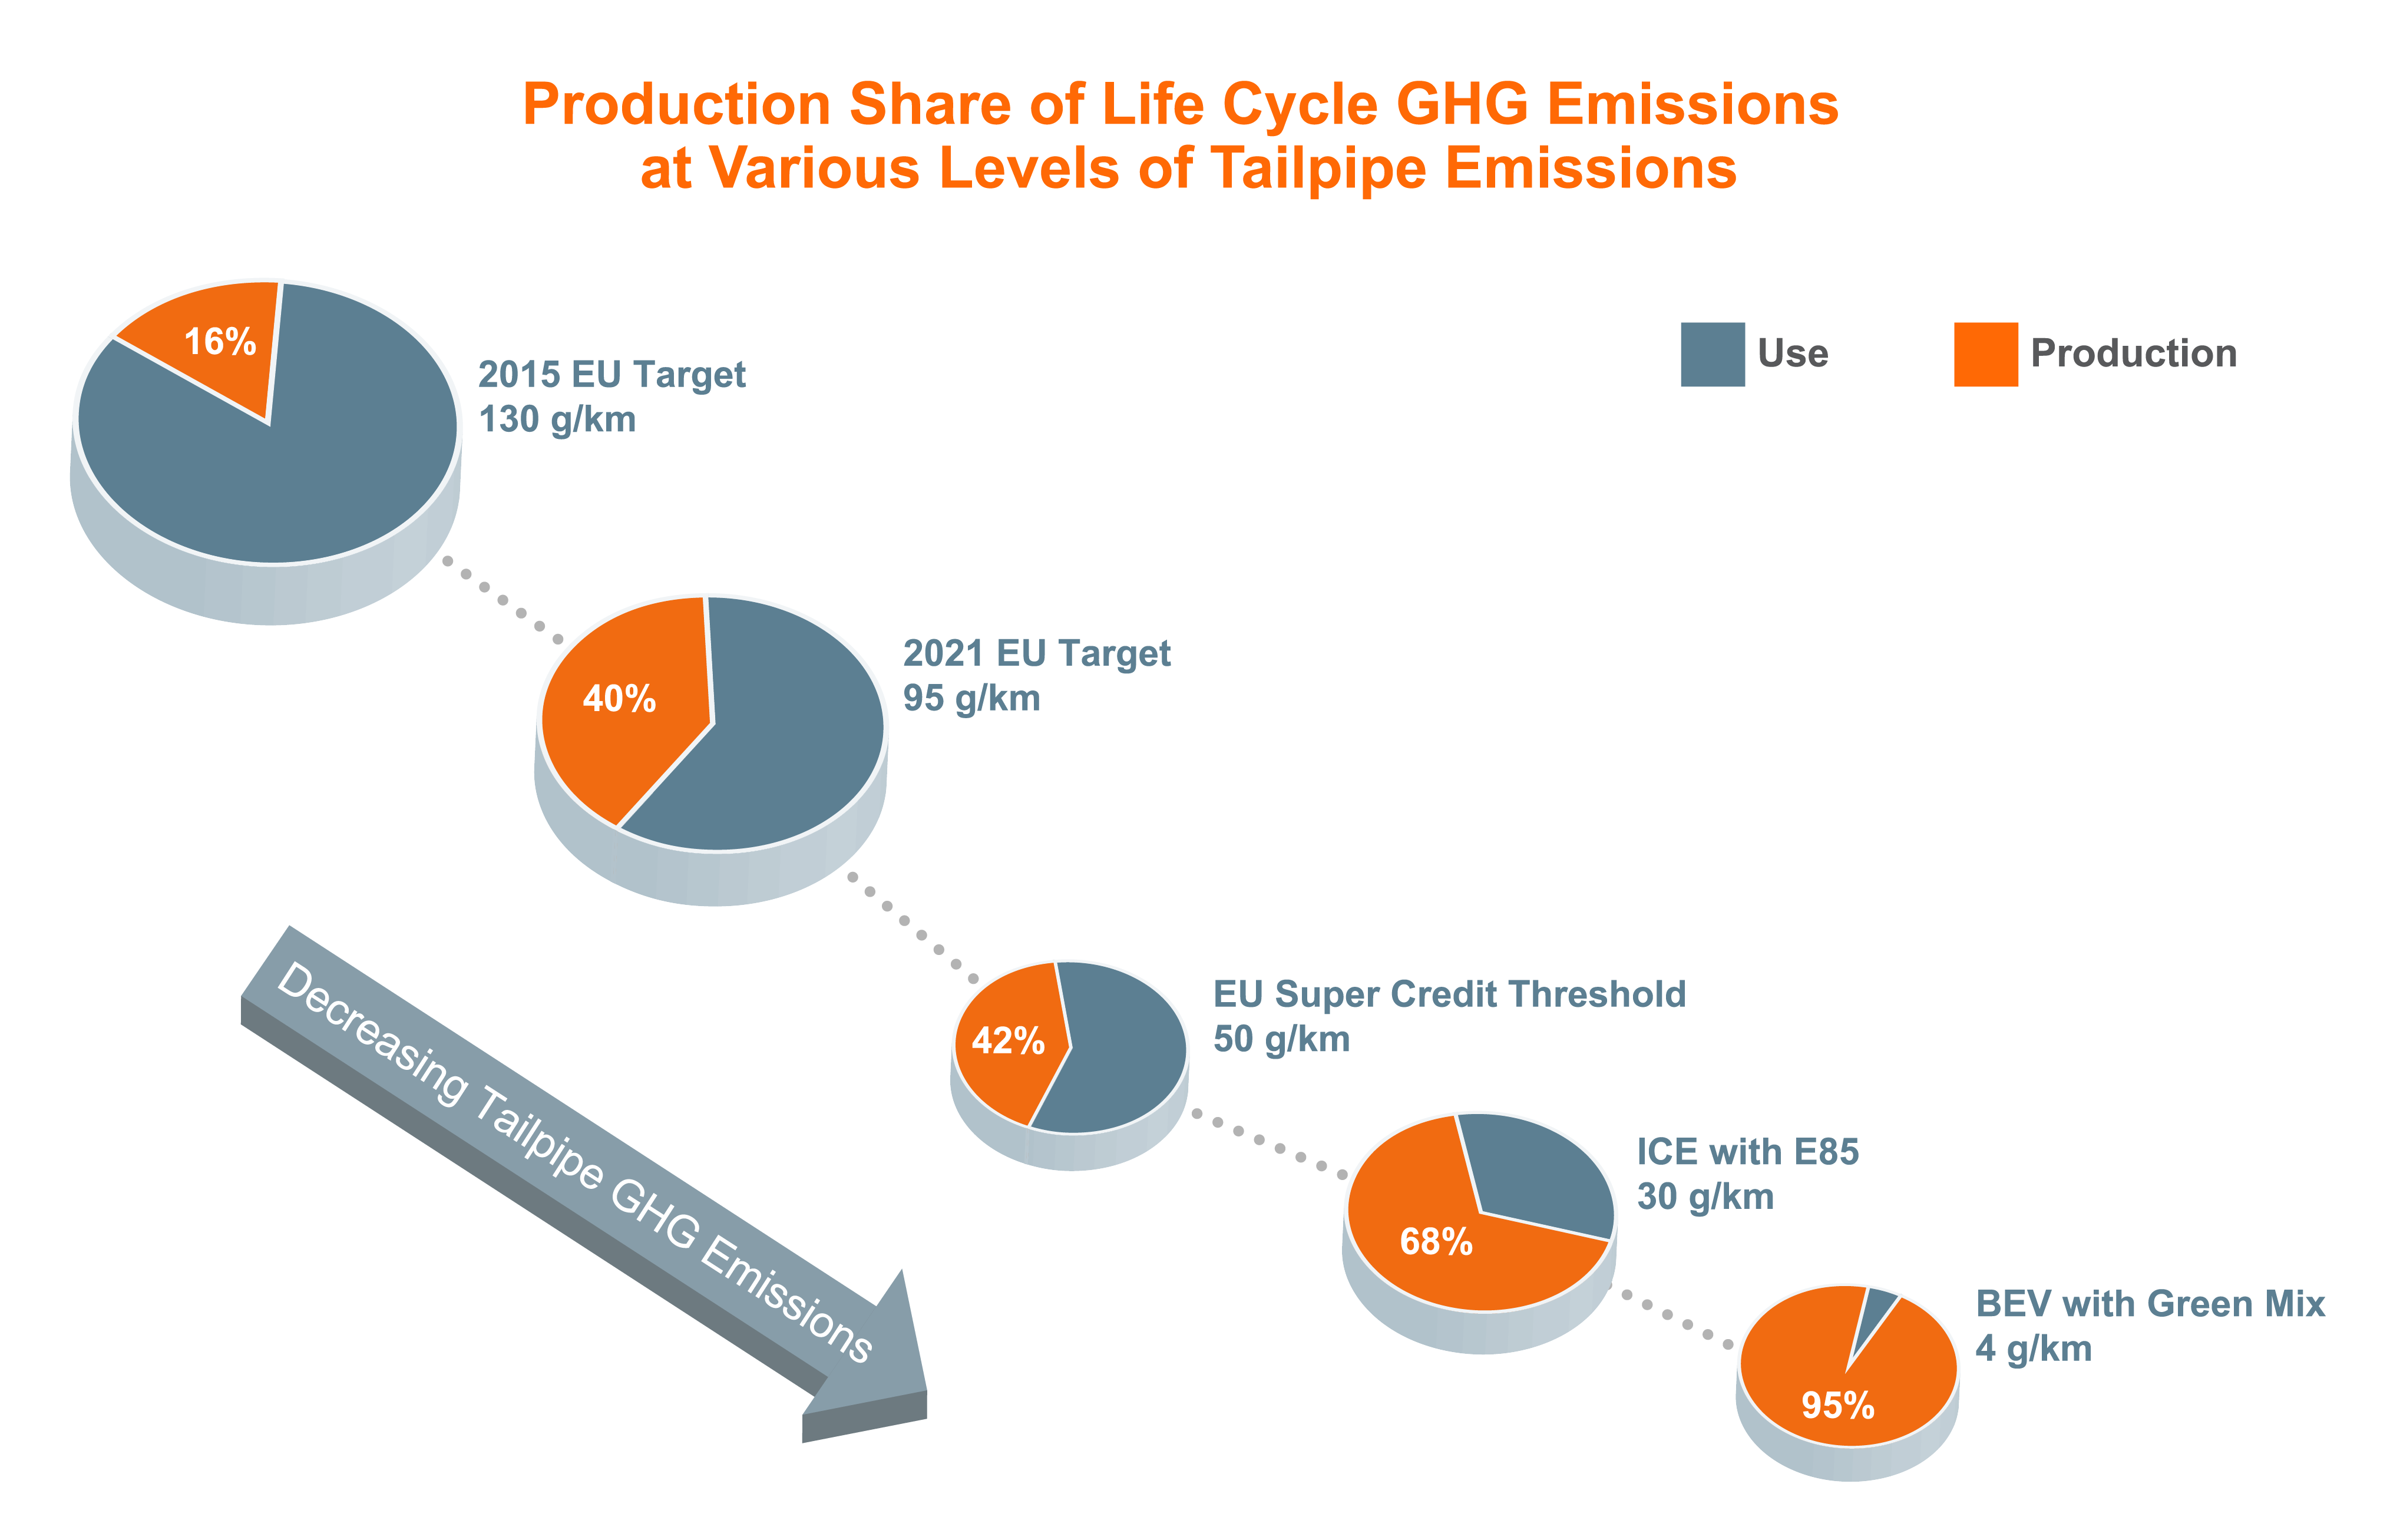 Chart showing various levels of tailpipe emissions